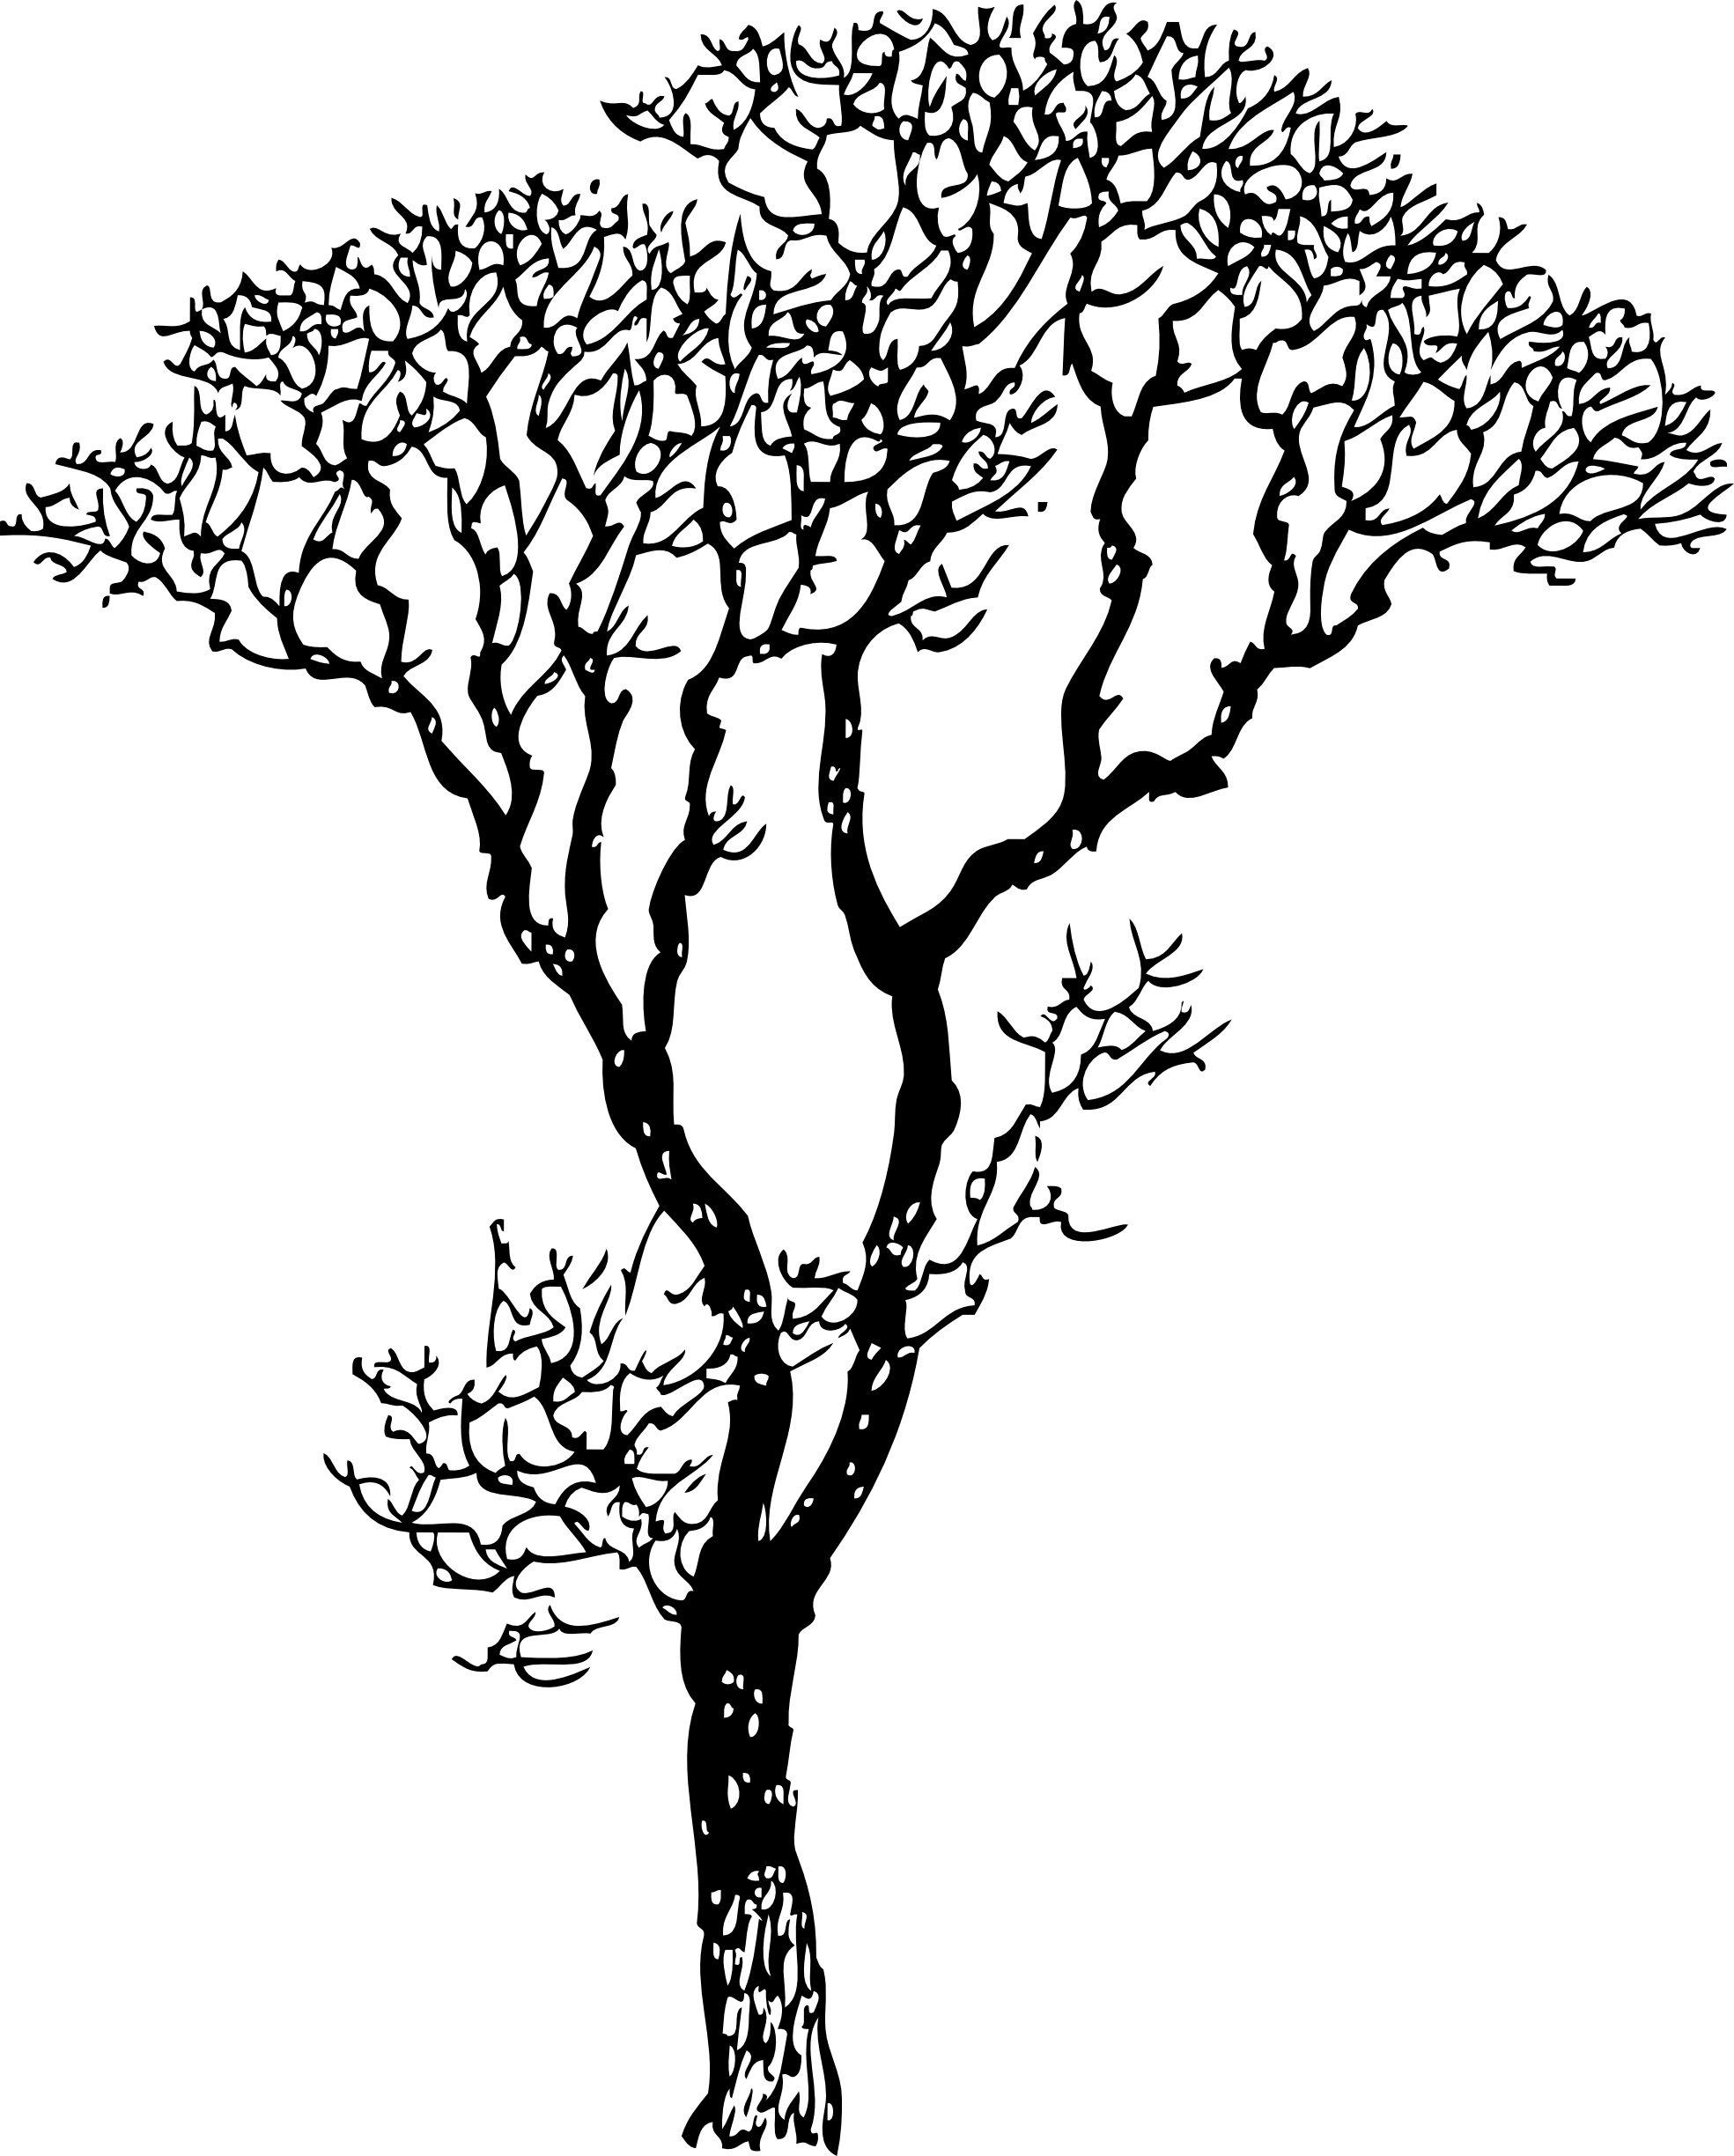 graphic royalty free download Drawing charcoal tree. Bare black white line